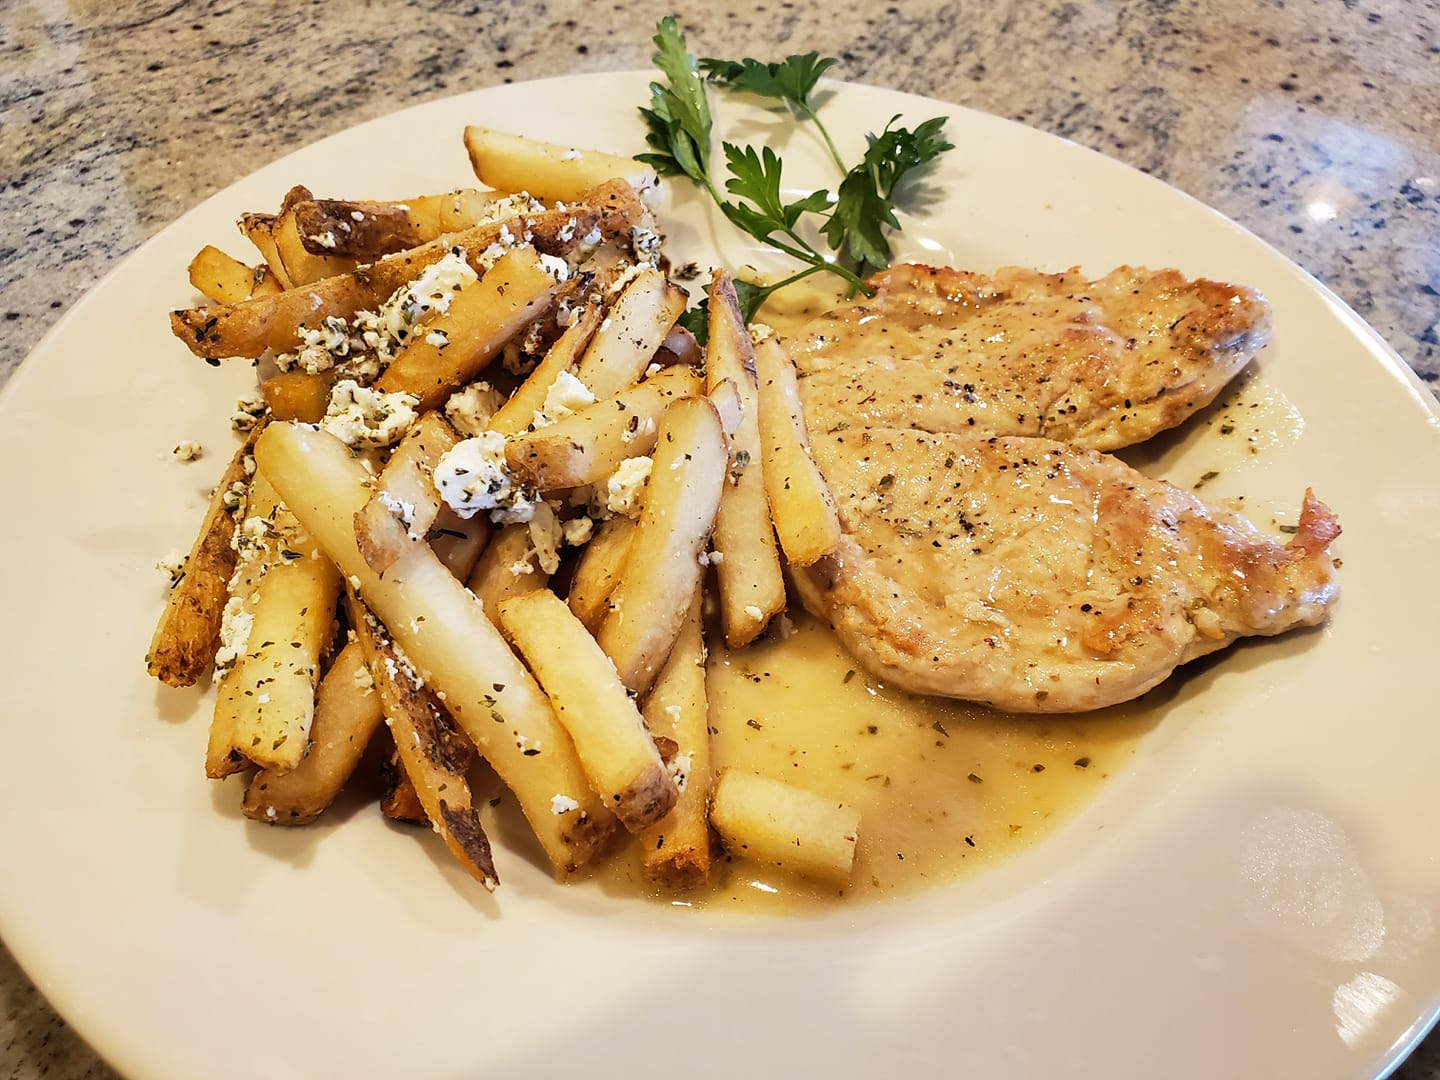 MS GREEK CHICKEN BREAST W FETA FRIES.jpg